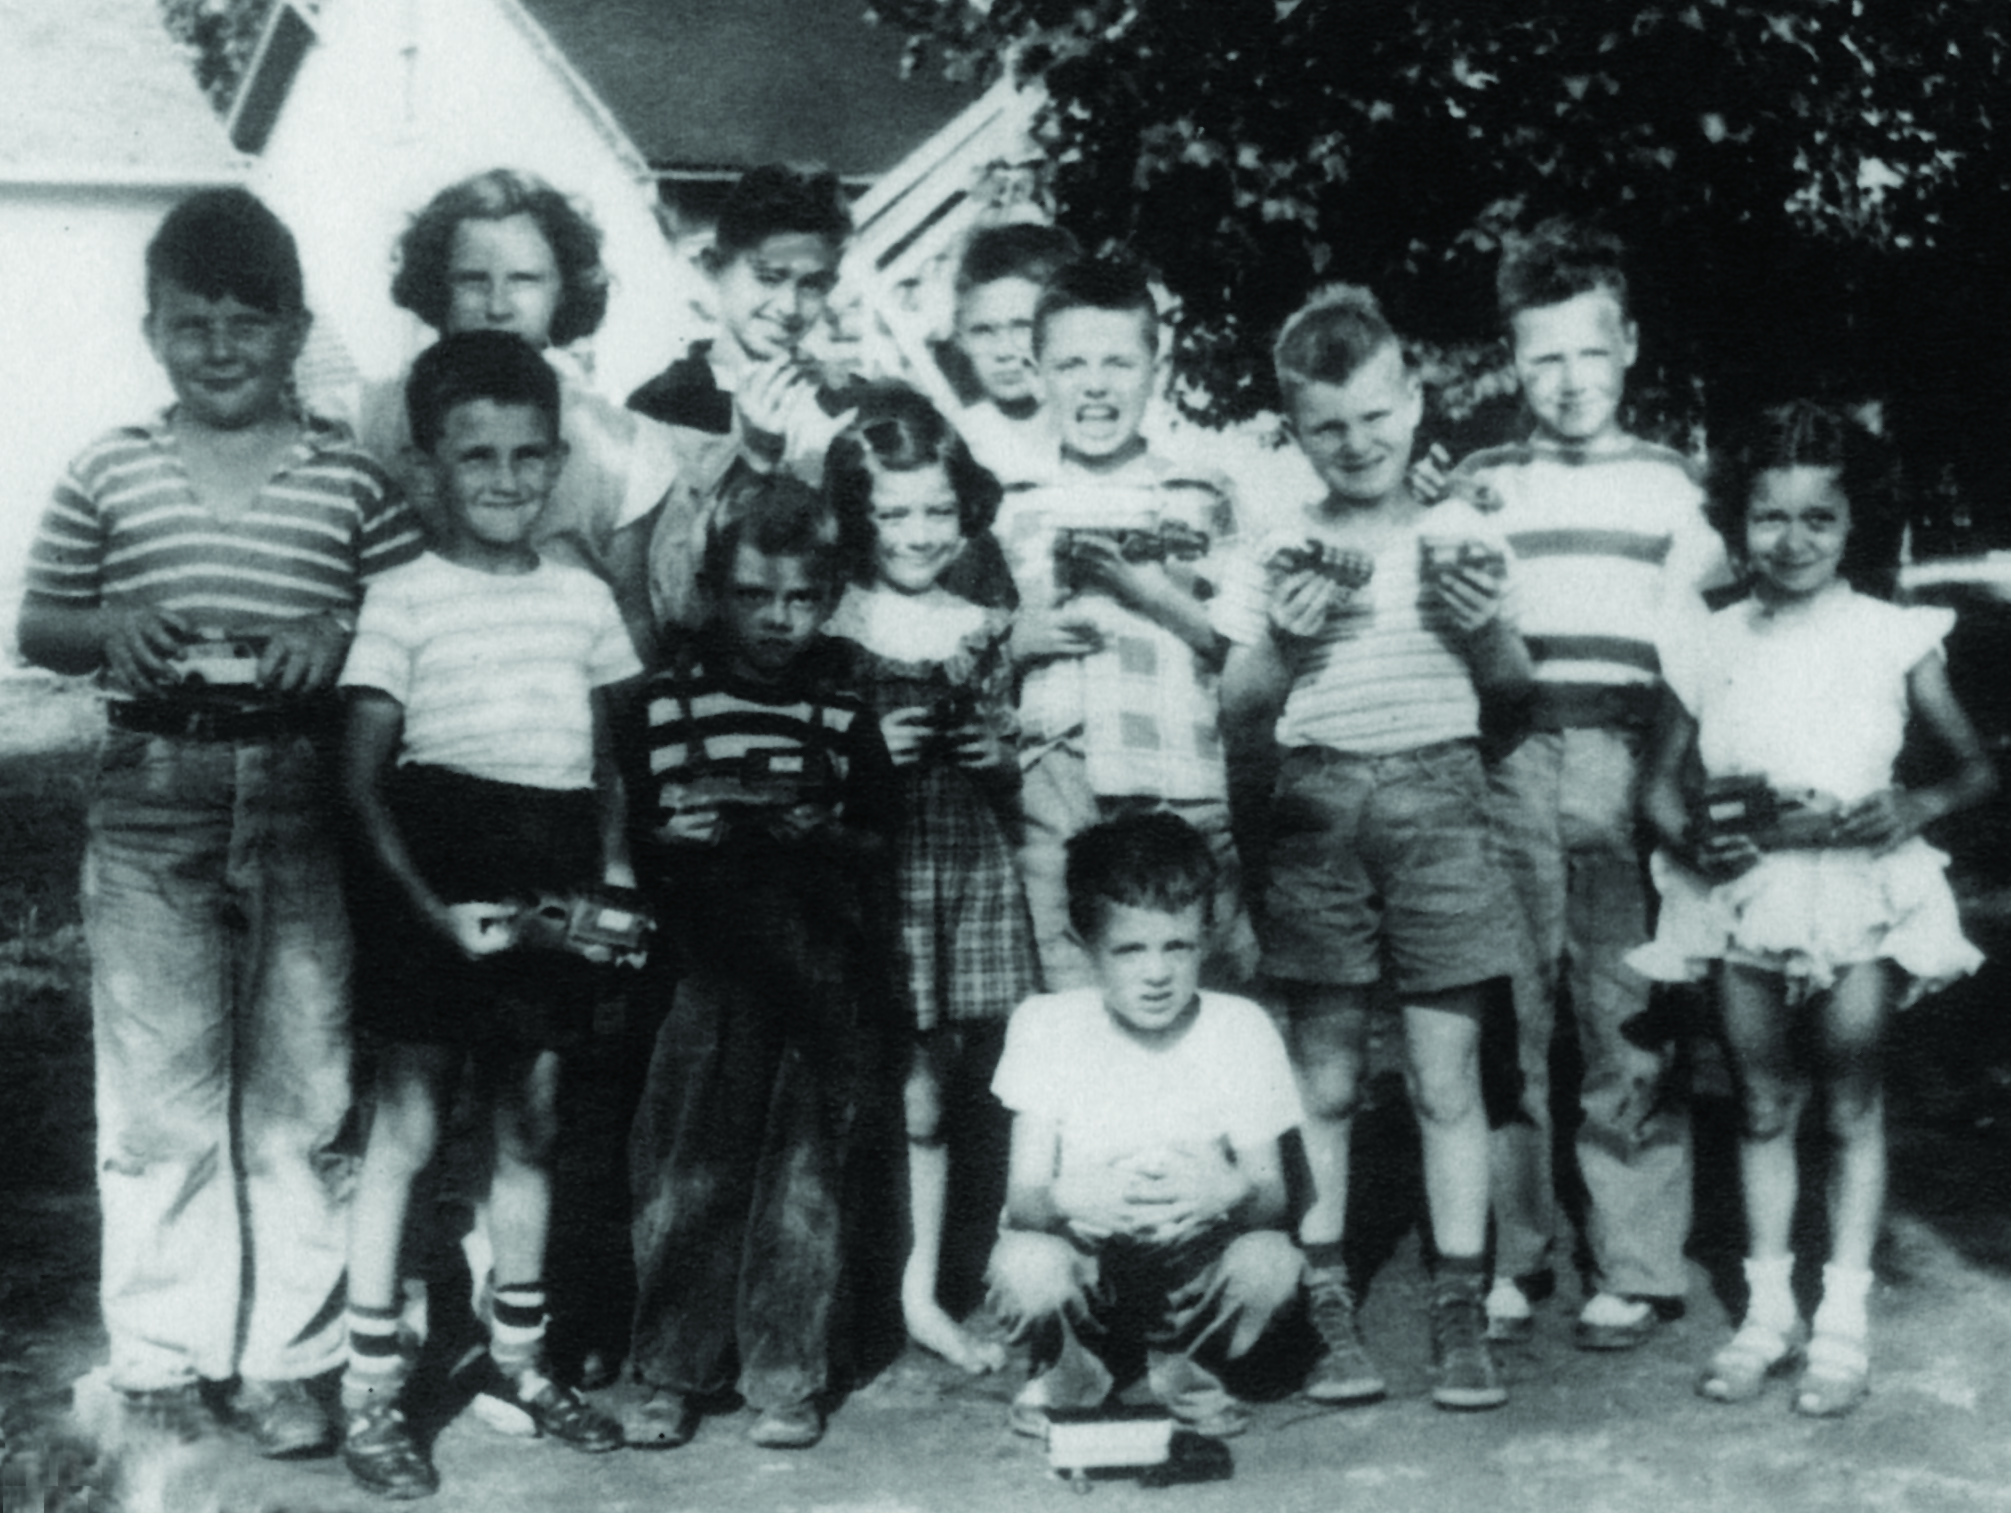 Charlie Ryan on far left (stage right) and his friends.